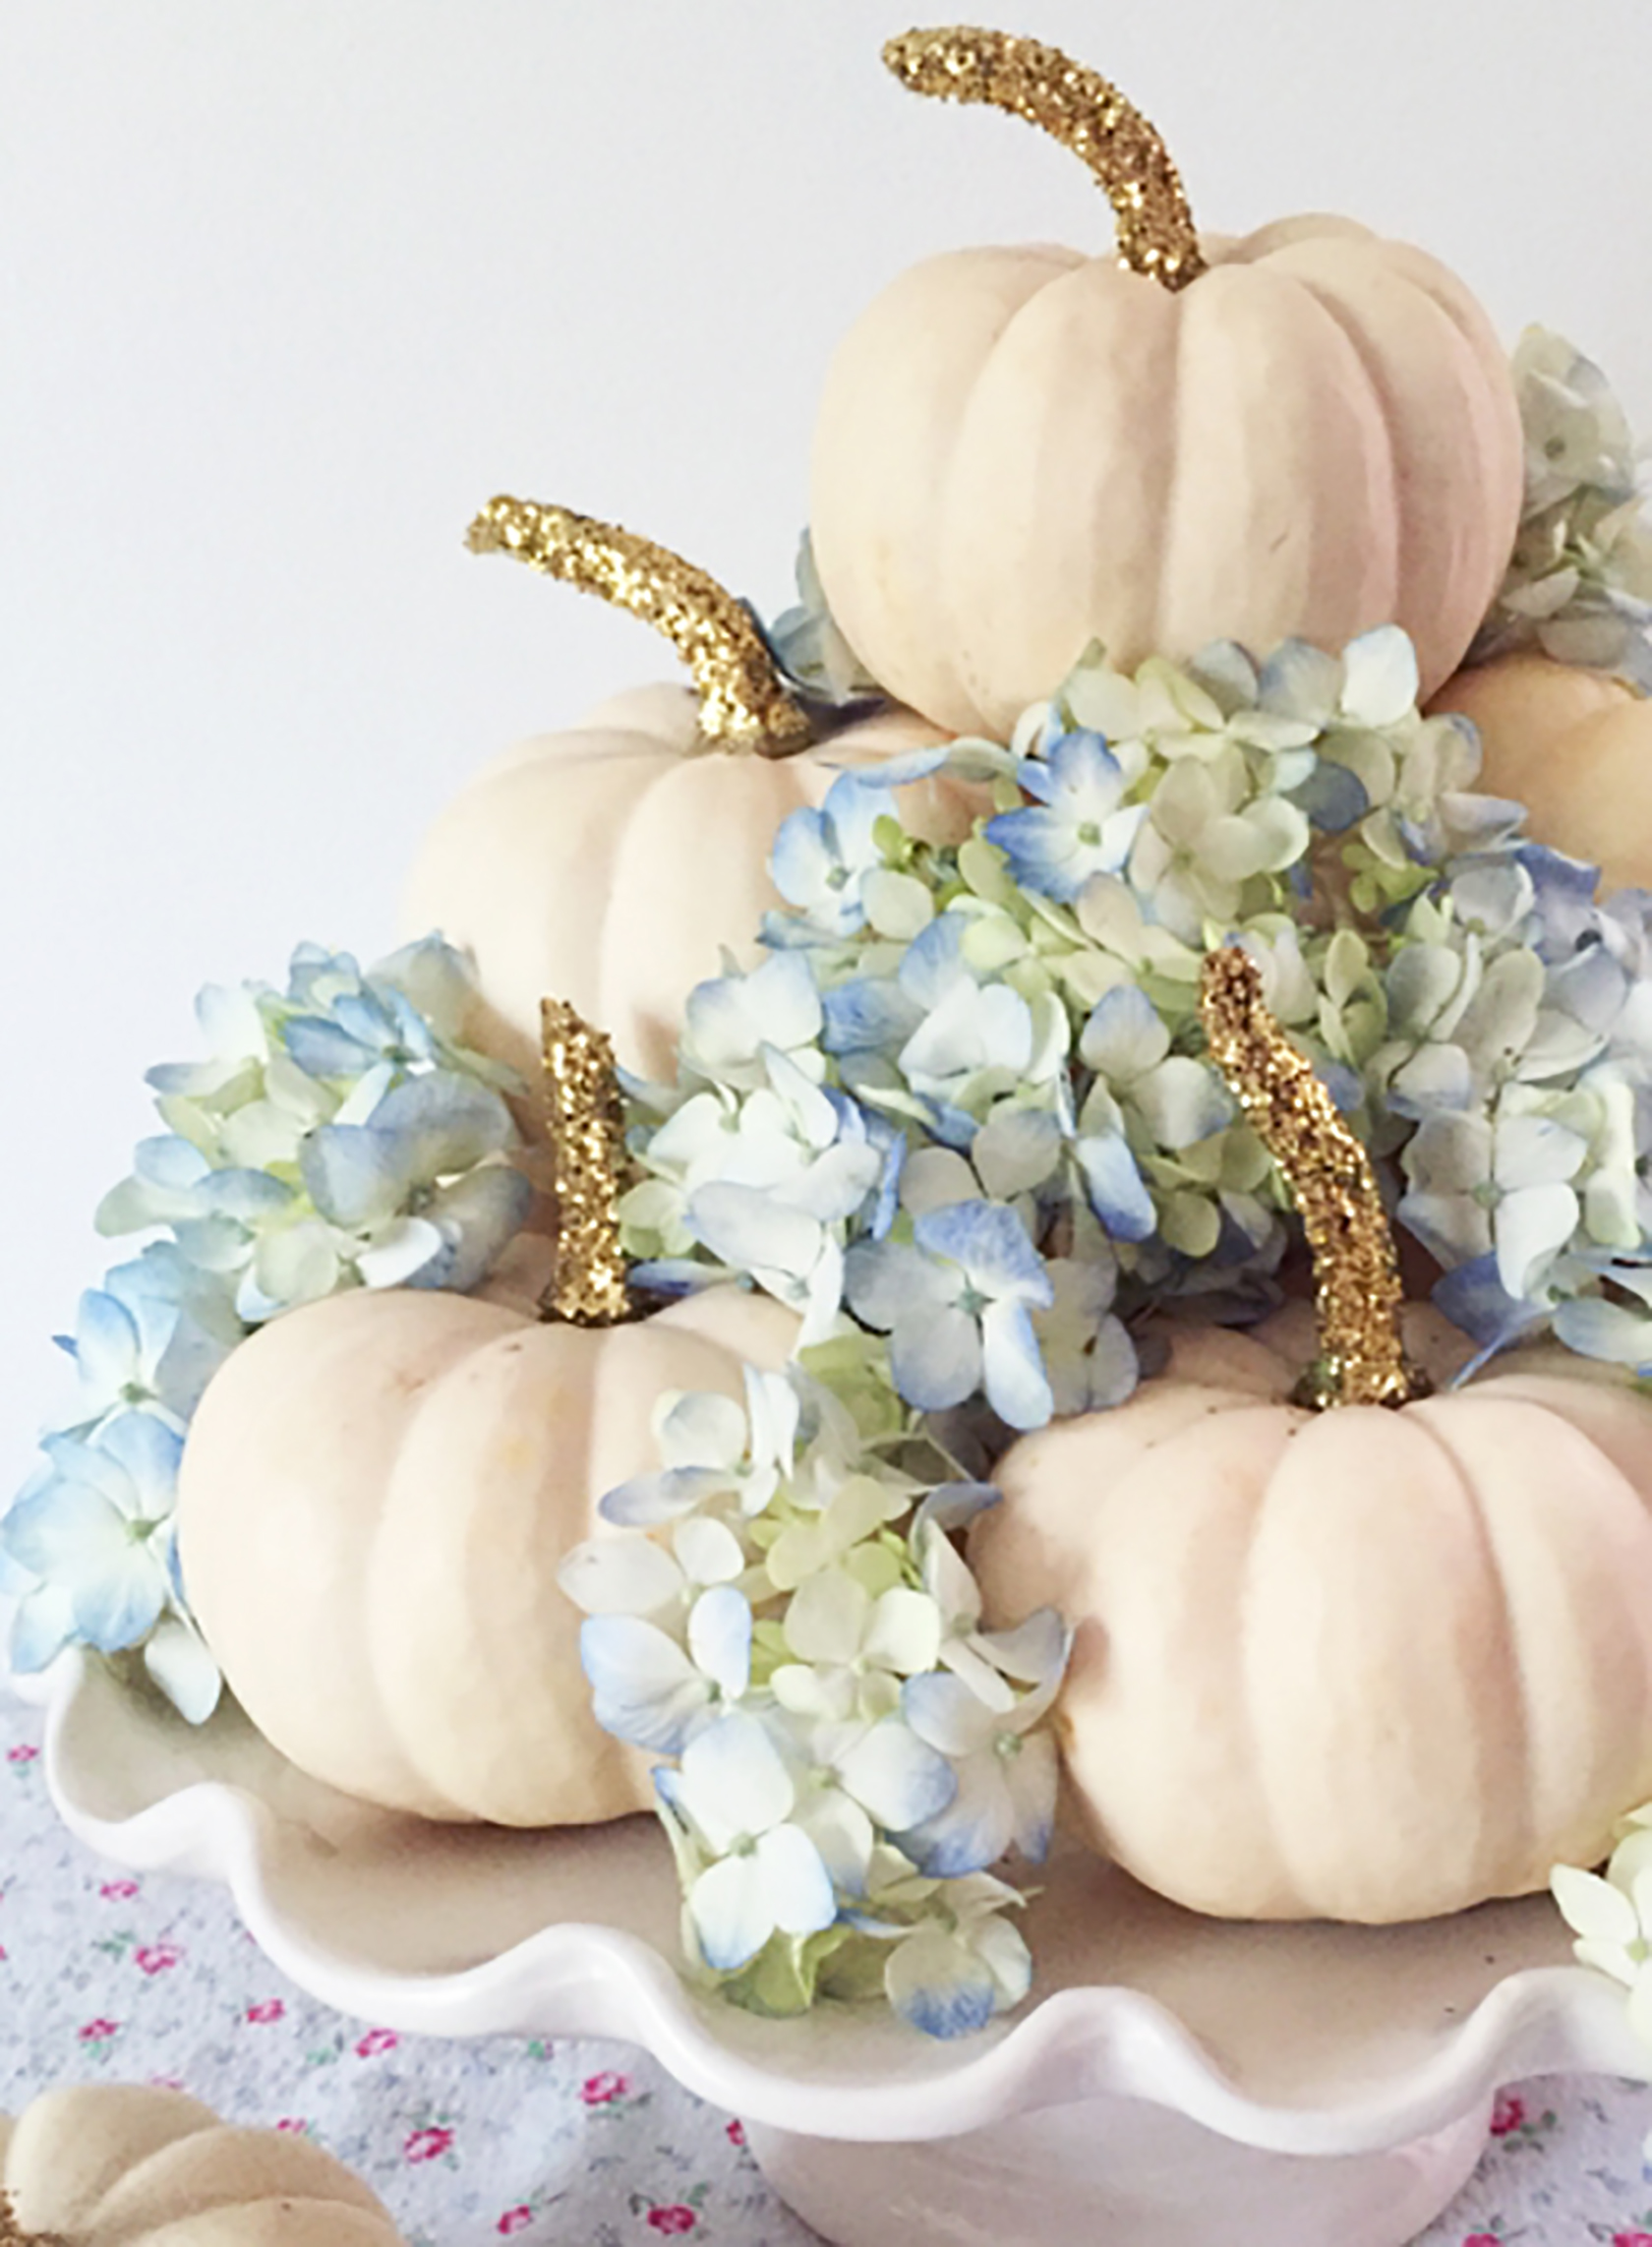 Sydne Style shares no carve pumpkin diy ideas for fall decor halloween with glitter white pumpkins